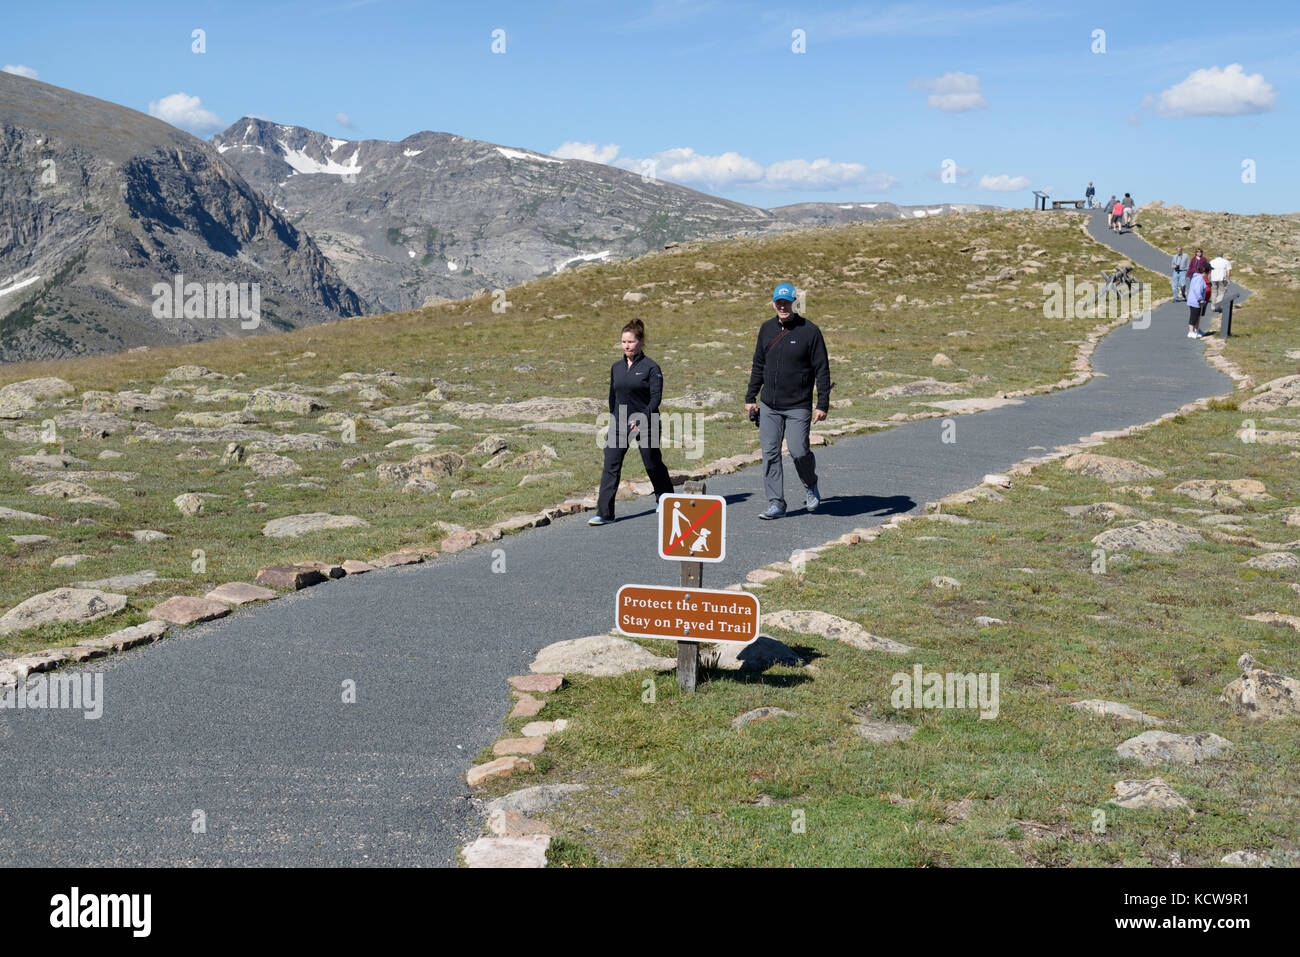 Visitors at Rainbow Curve viewpoint, Rocky Mountain National Park, Colorado - Stock Image